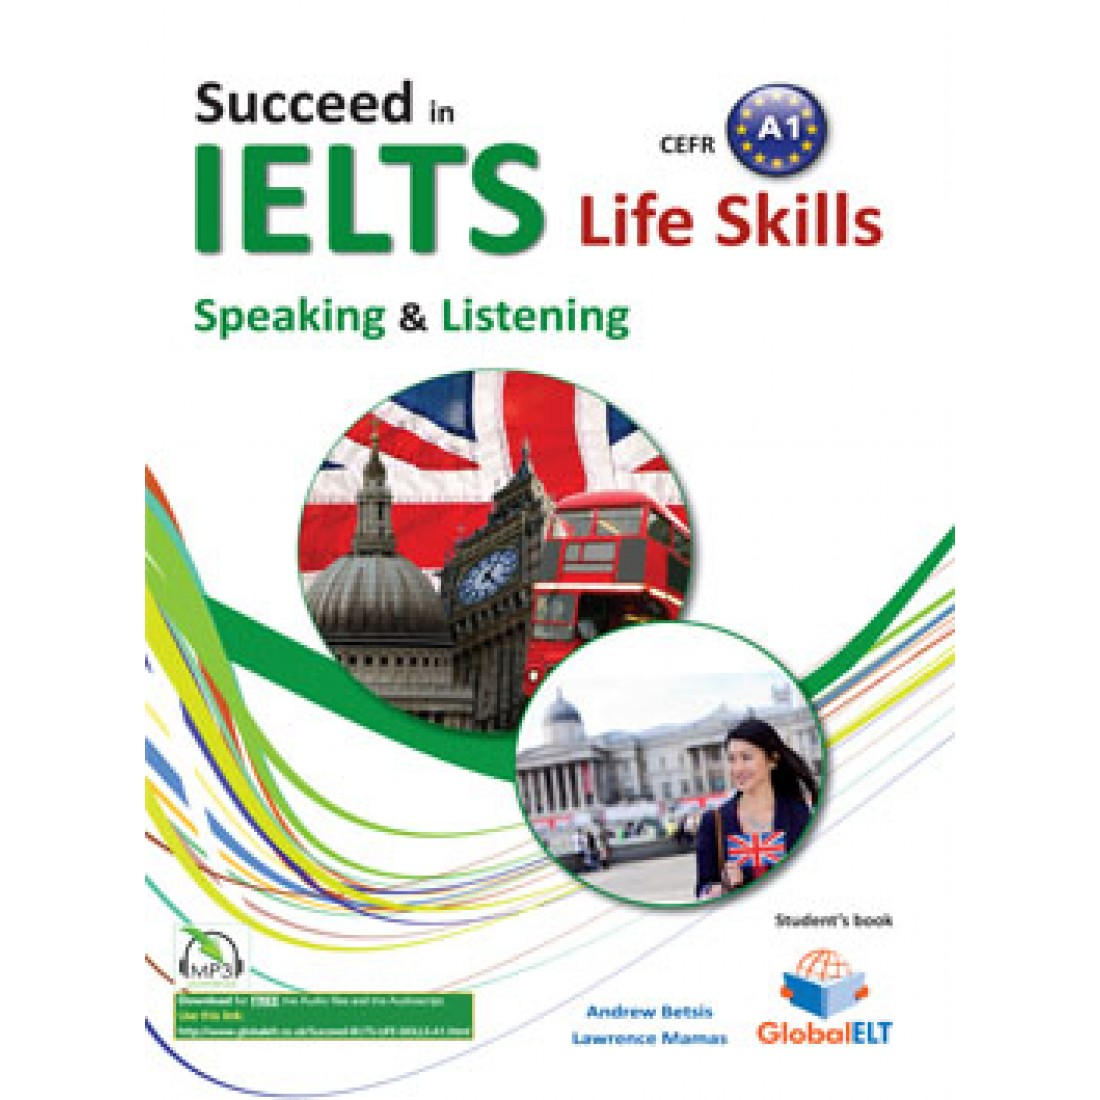 Succeed in IELTS Life Skills - CEFR A1 Student's book